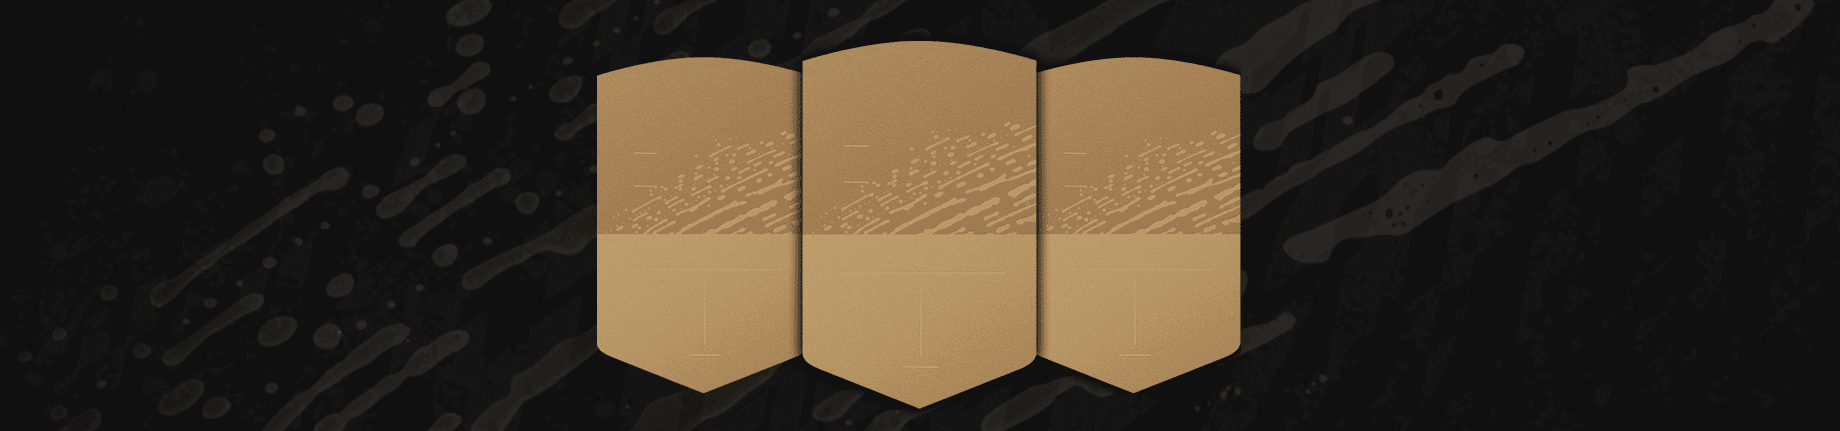 Bronze pack method